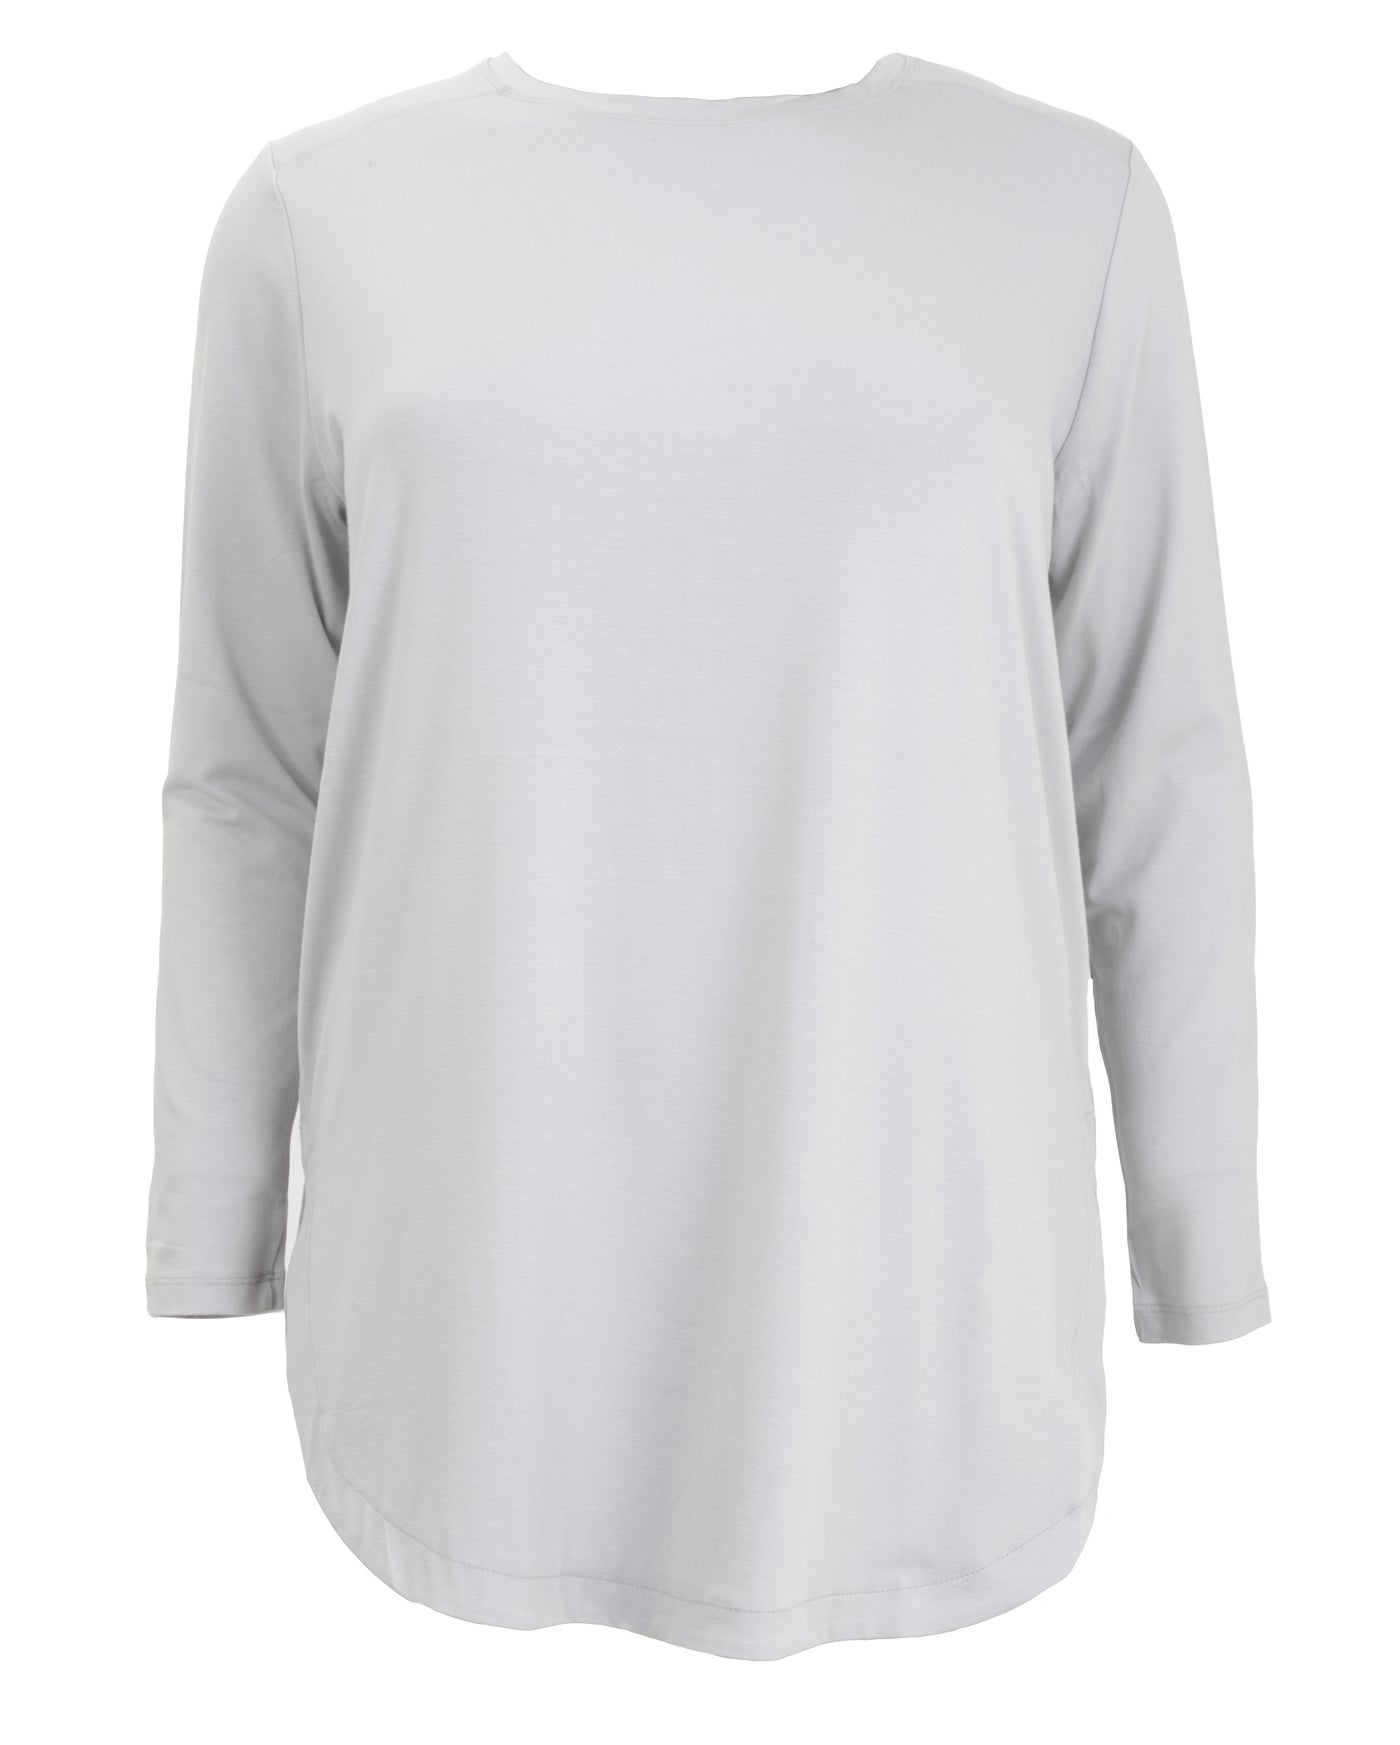 Ayrtight Royce Core Crew Long Sleeve Top in Vapor